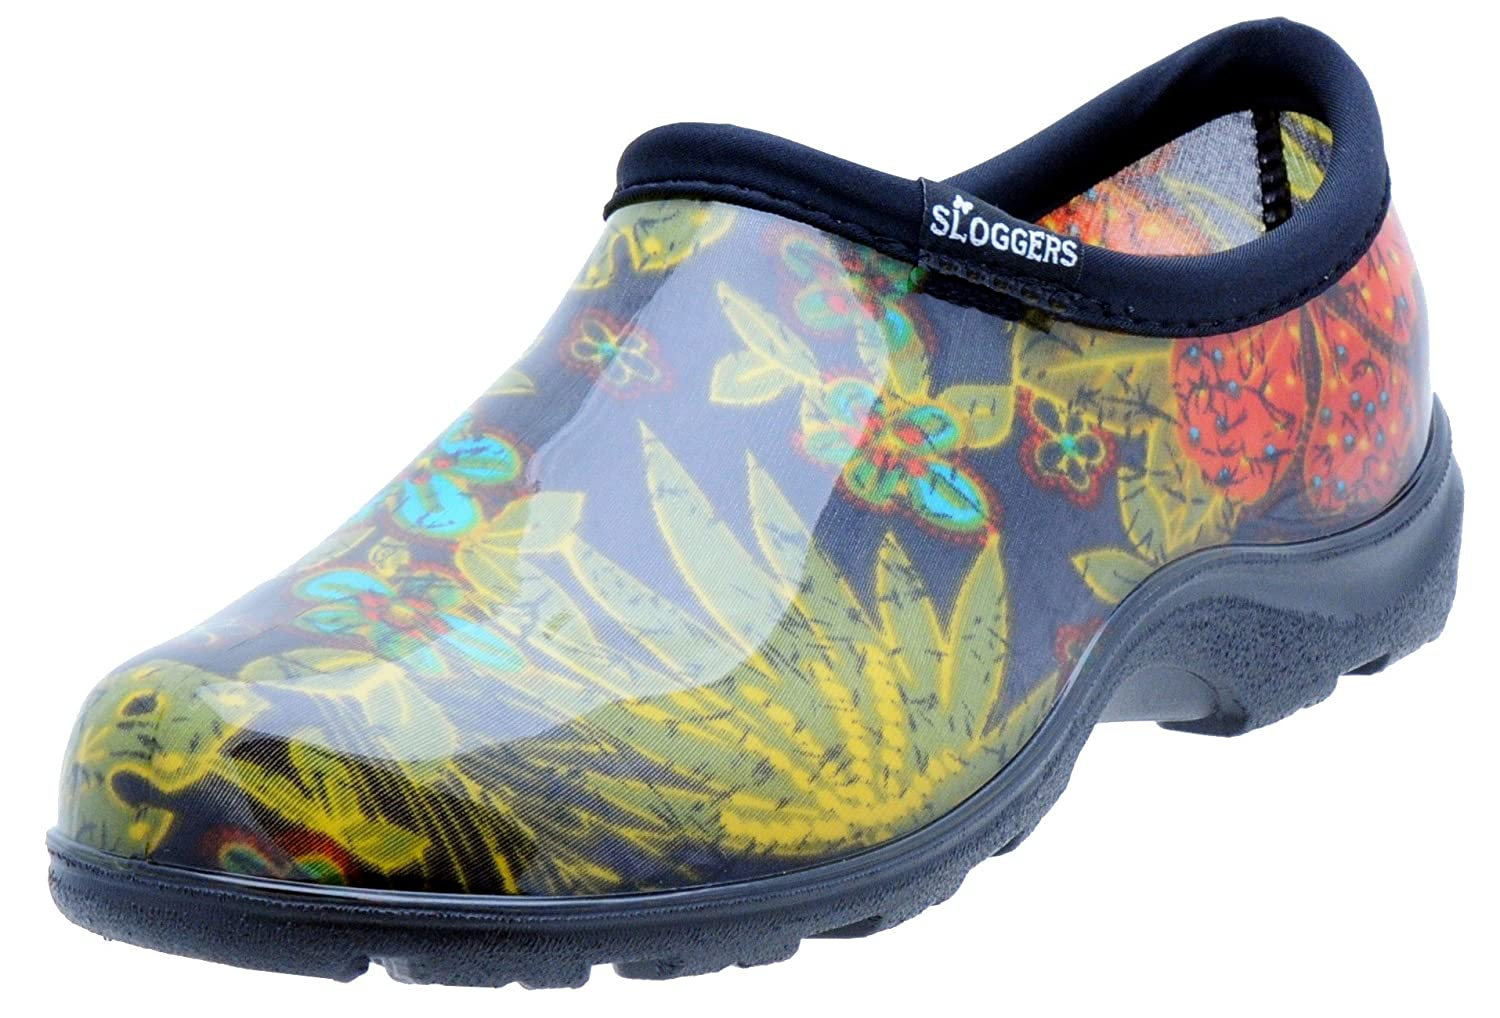 SloggersWomen's WaterproofRain and Garden Shoe with Comfort Insole, Midsummer Black, Size 10,Style 5102BK10